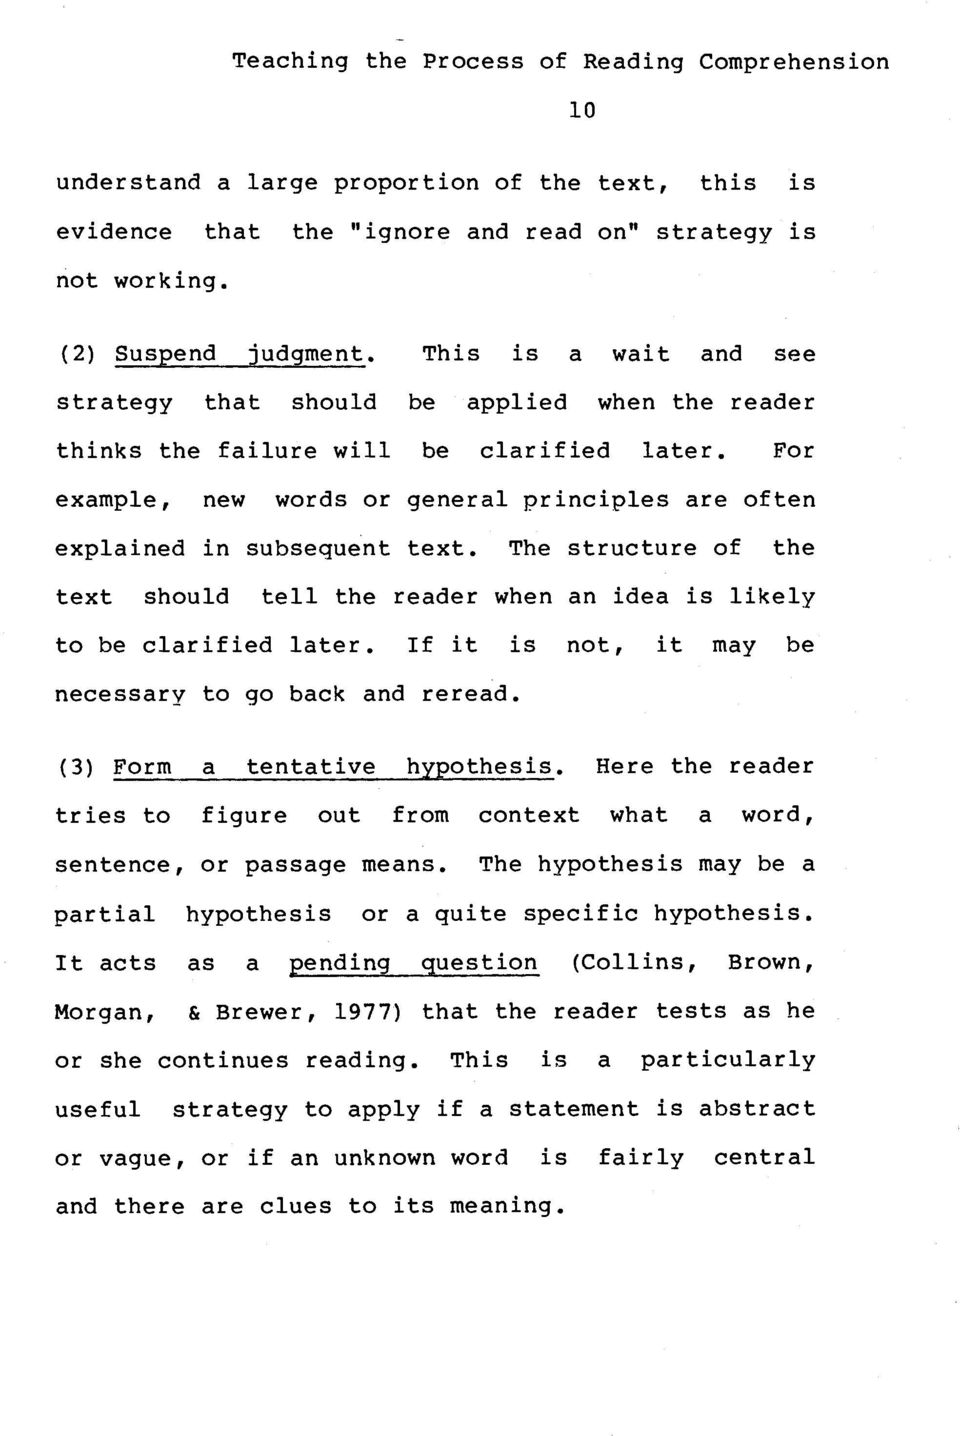 The structure of the text should tell the reader when an idea is likely to be clarified later. If it is not, it may be necessary to go back and reread. (3) Form a tentative hypothesis.